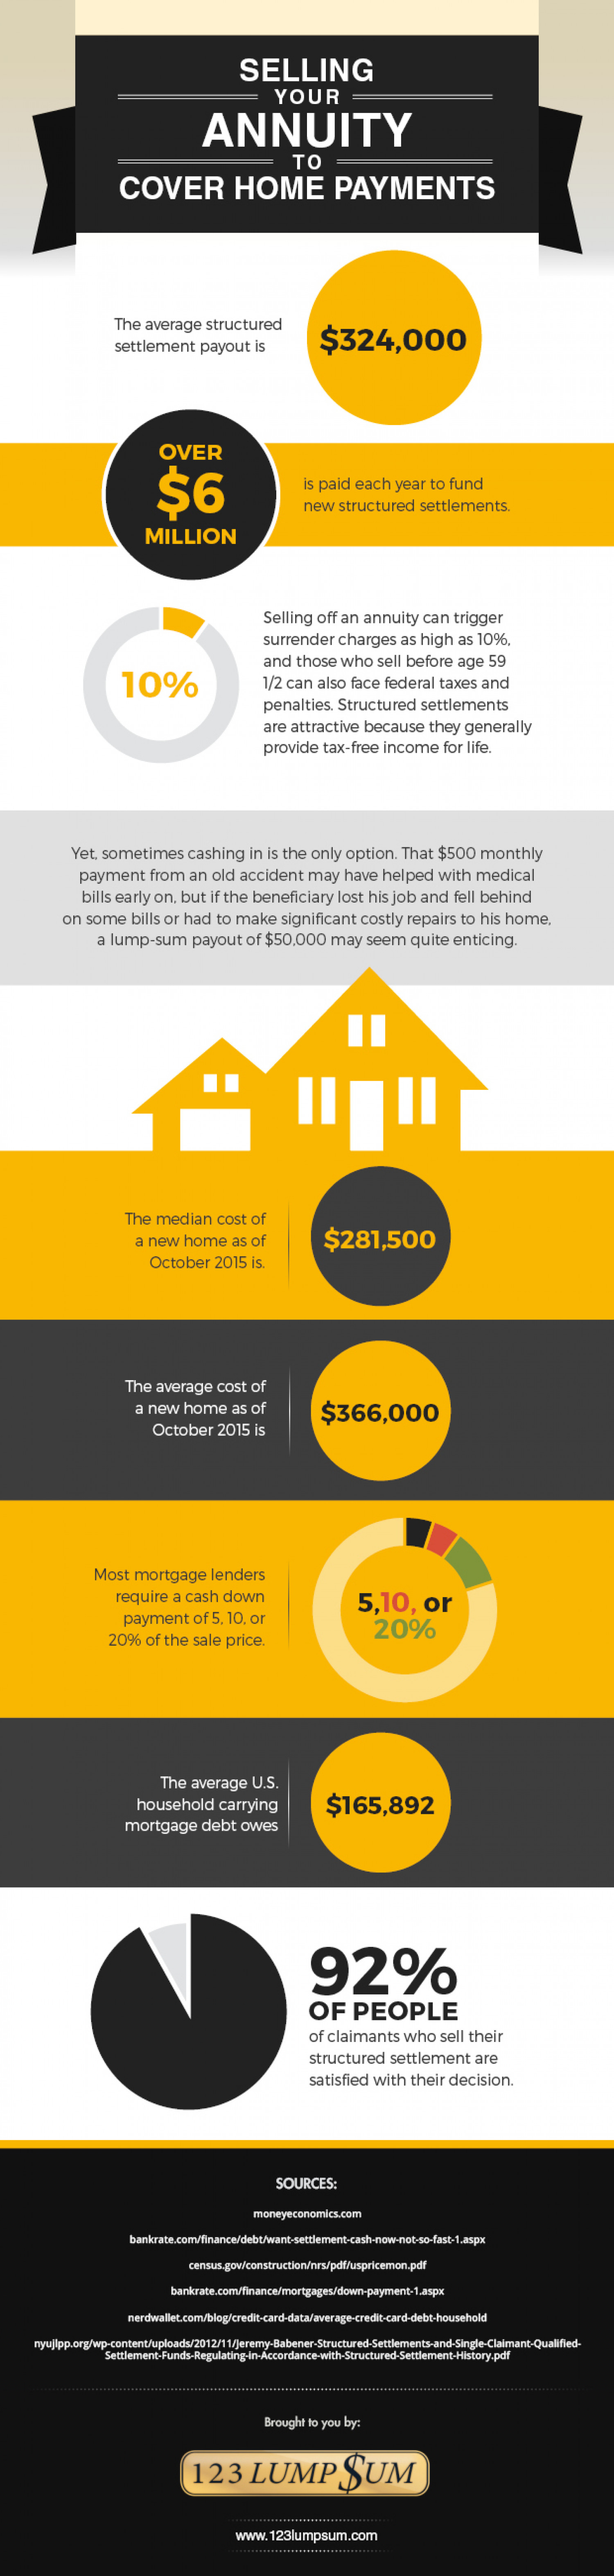 Selling Your Annuity To Cover Home Payments Infographic